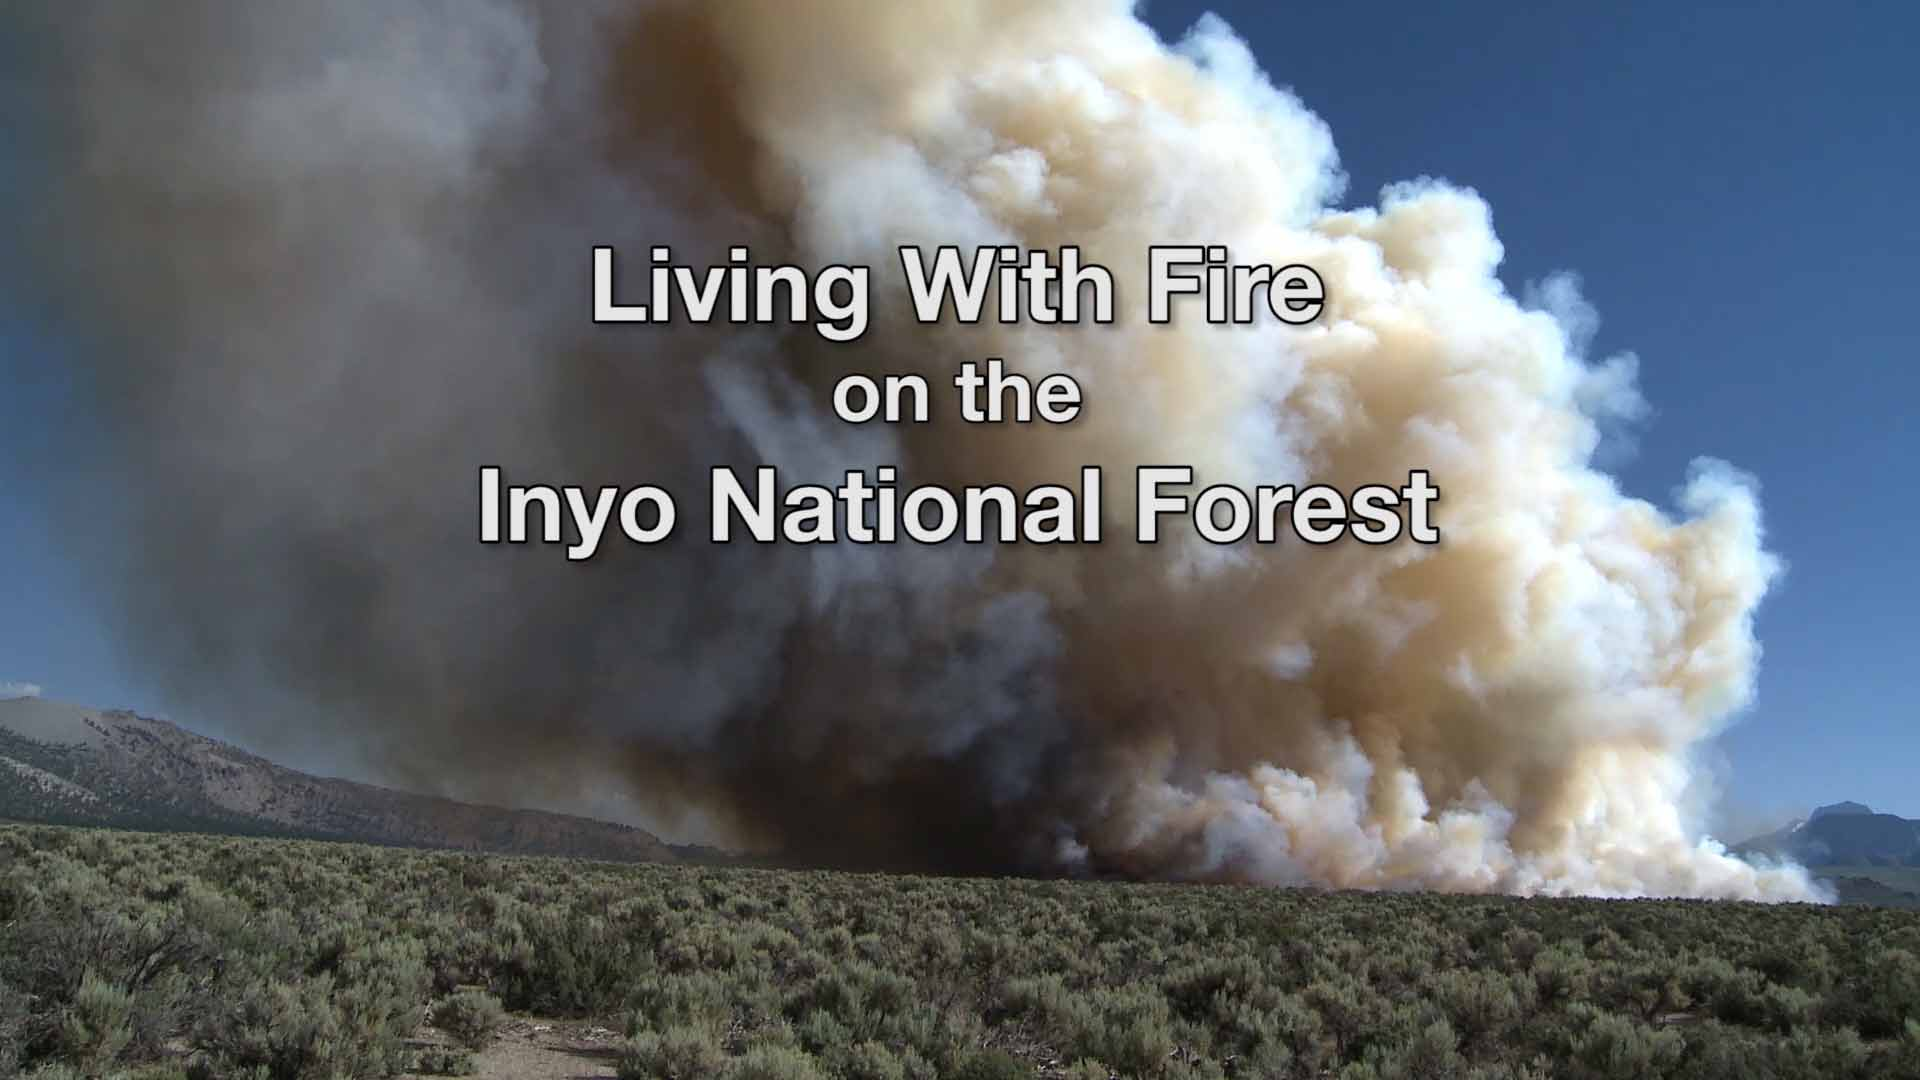 Fire producing smoke in a forest setting.